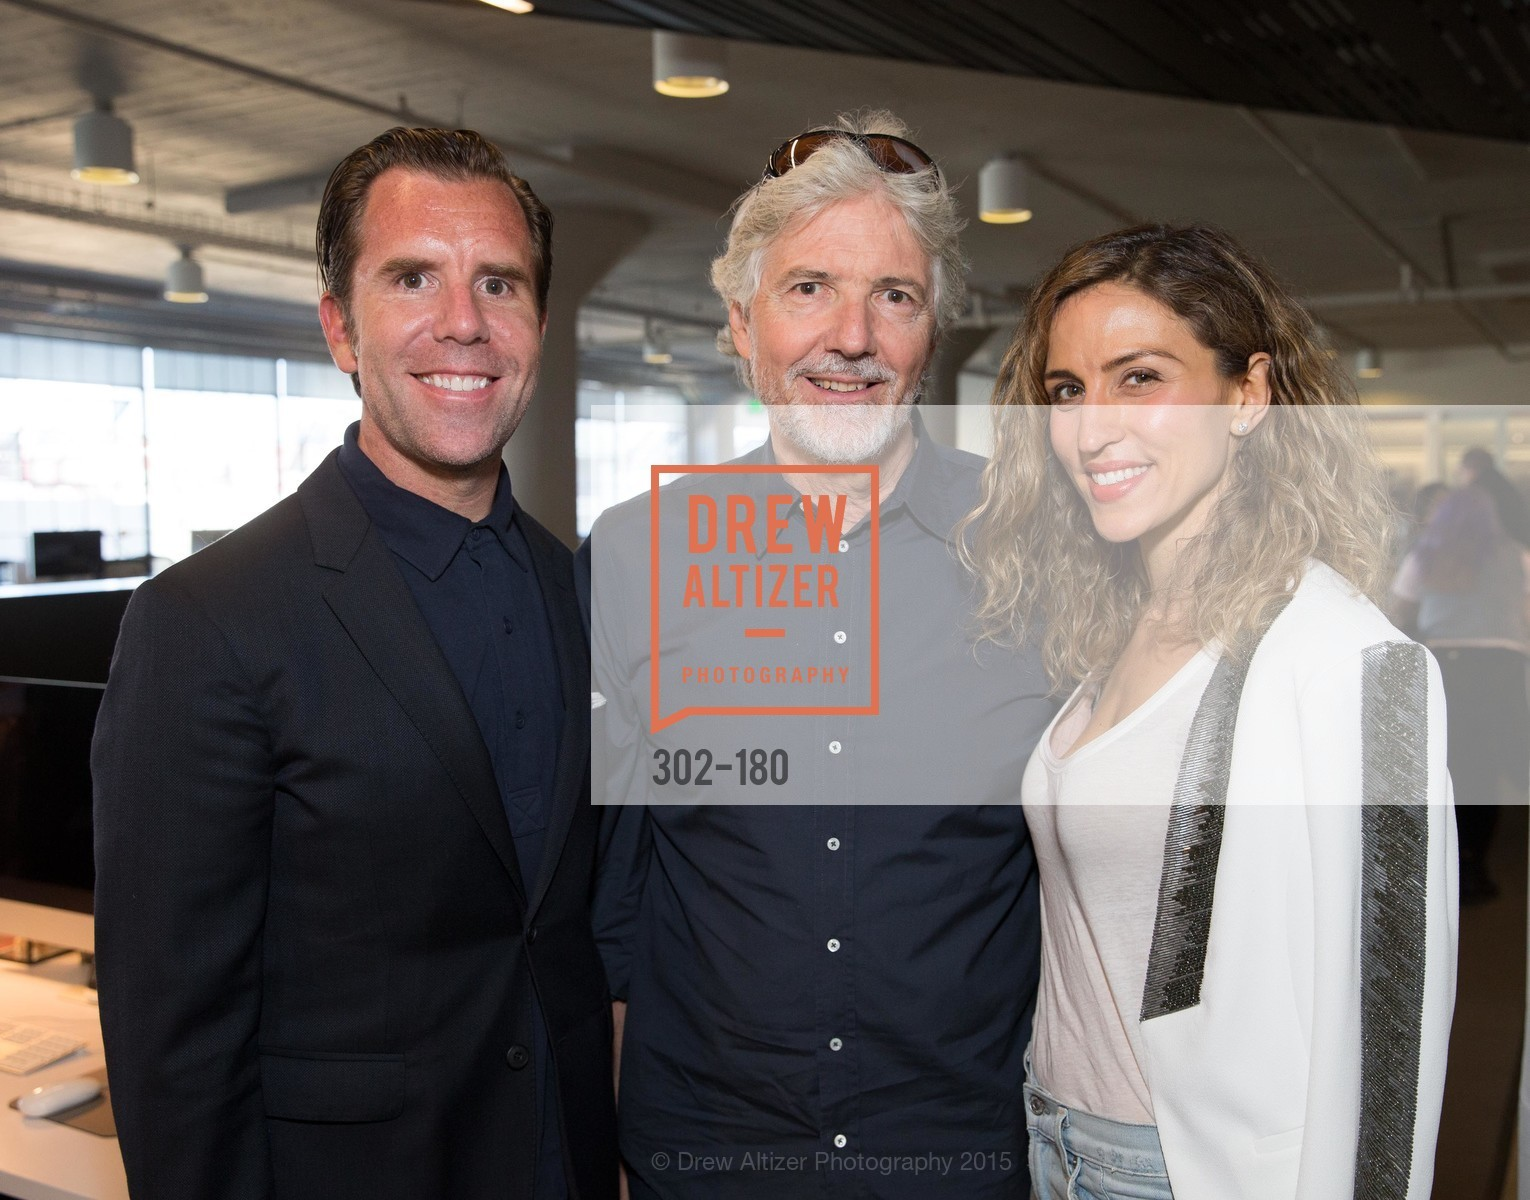 Scott Dadich, Louis Rossetto, Amy Dadich, Wired Magazine July Cover Release Celebration at New Wired Office, Wired Magazine Offices. 520 3rd Street, June 24th, 2015,Drew Altizer, Drew Altizer Photography, full-service agency, private events, San Francisco photographer, photographer california